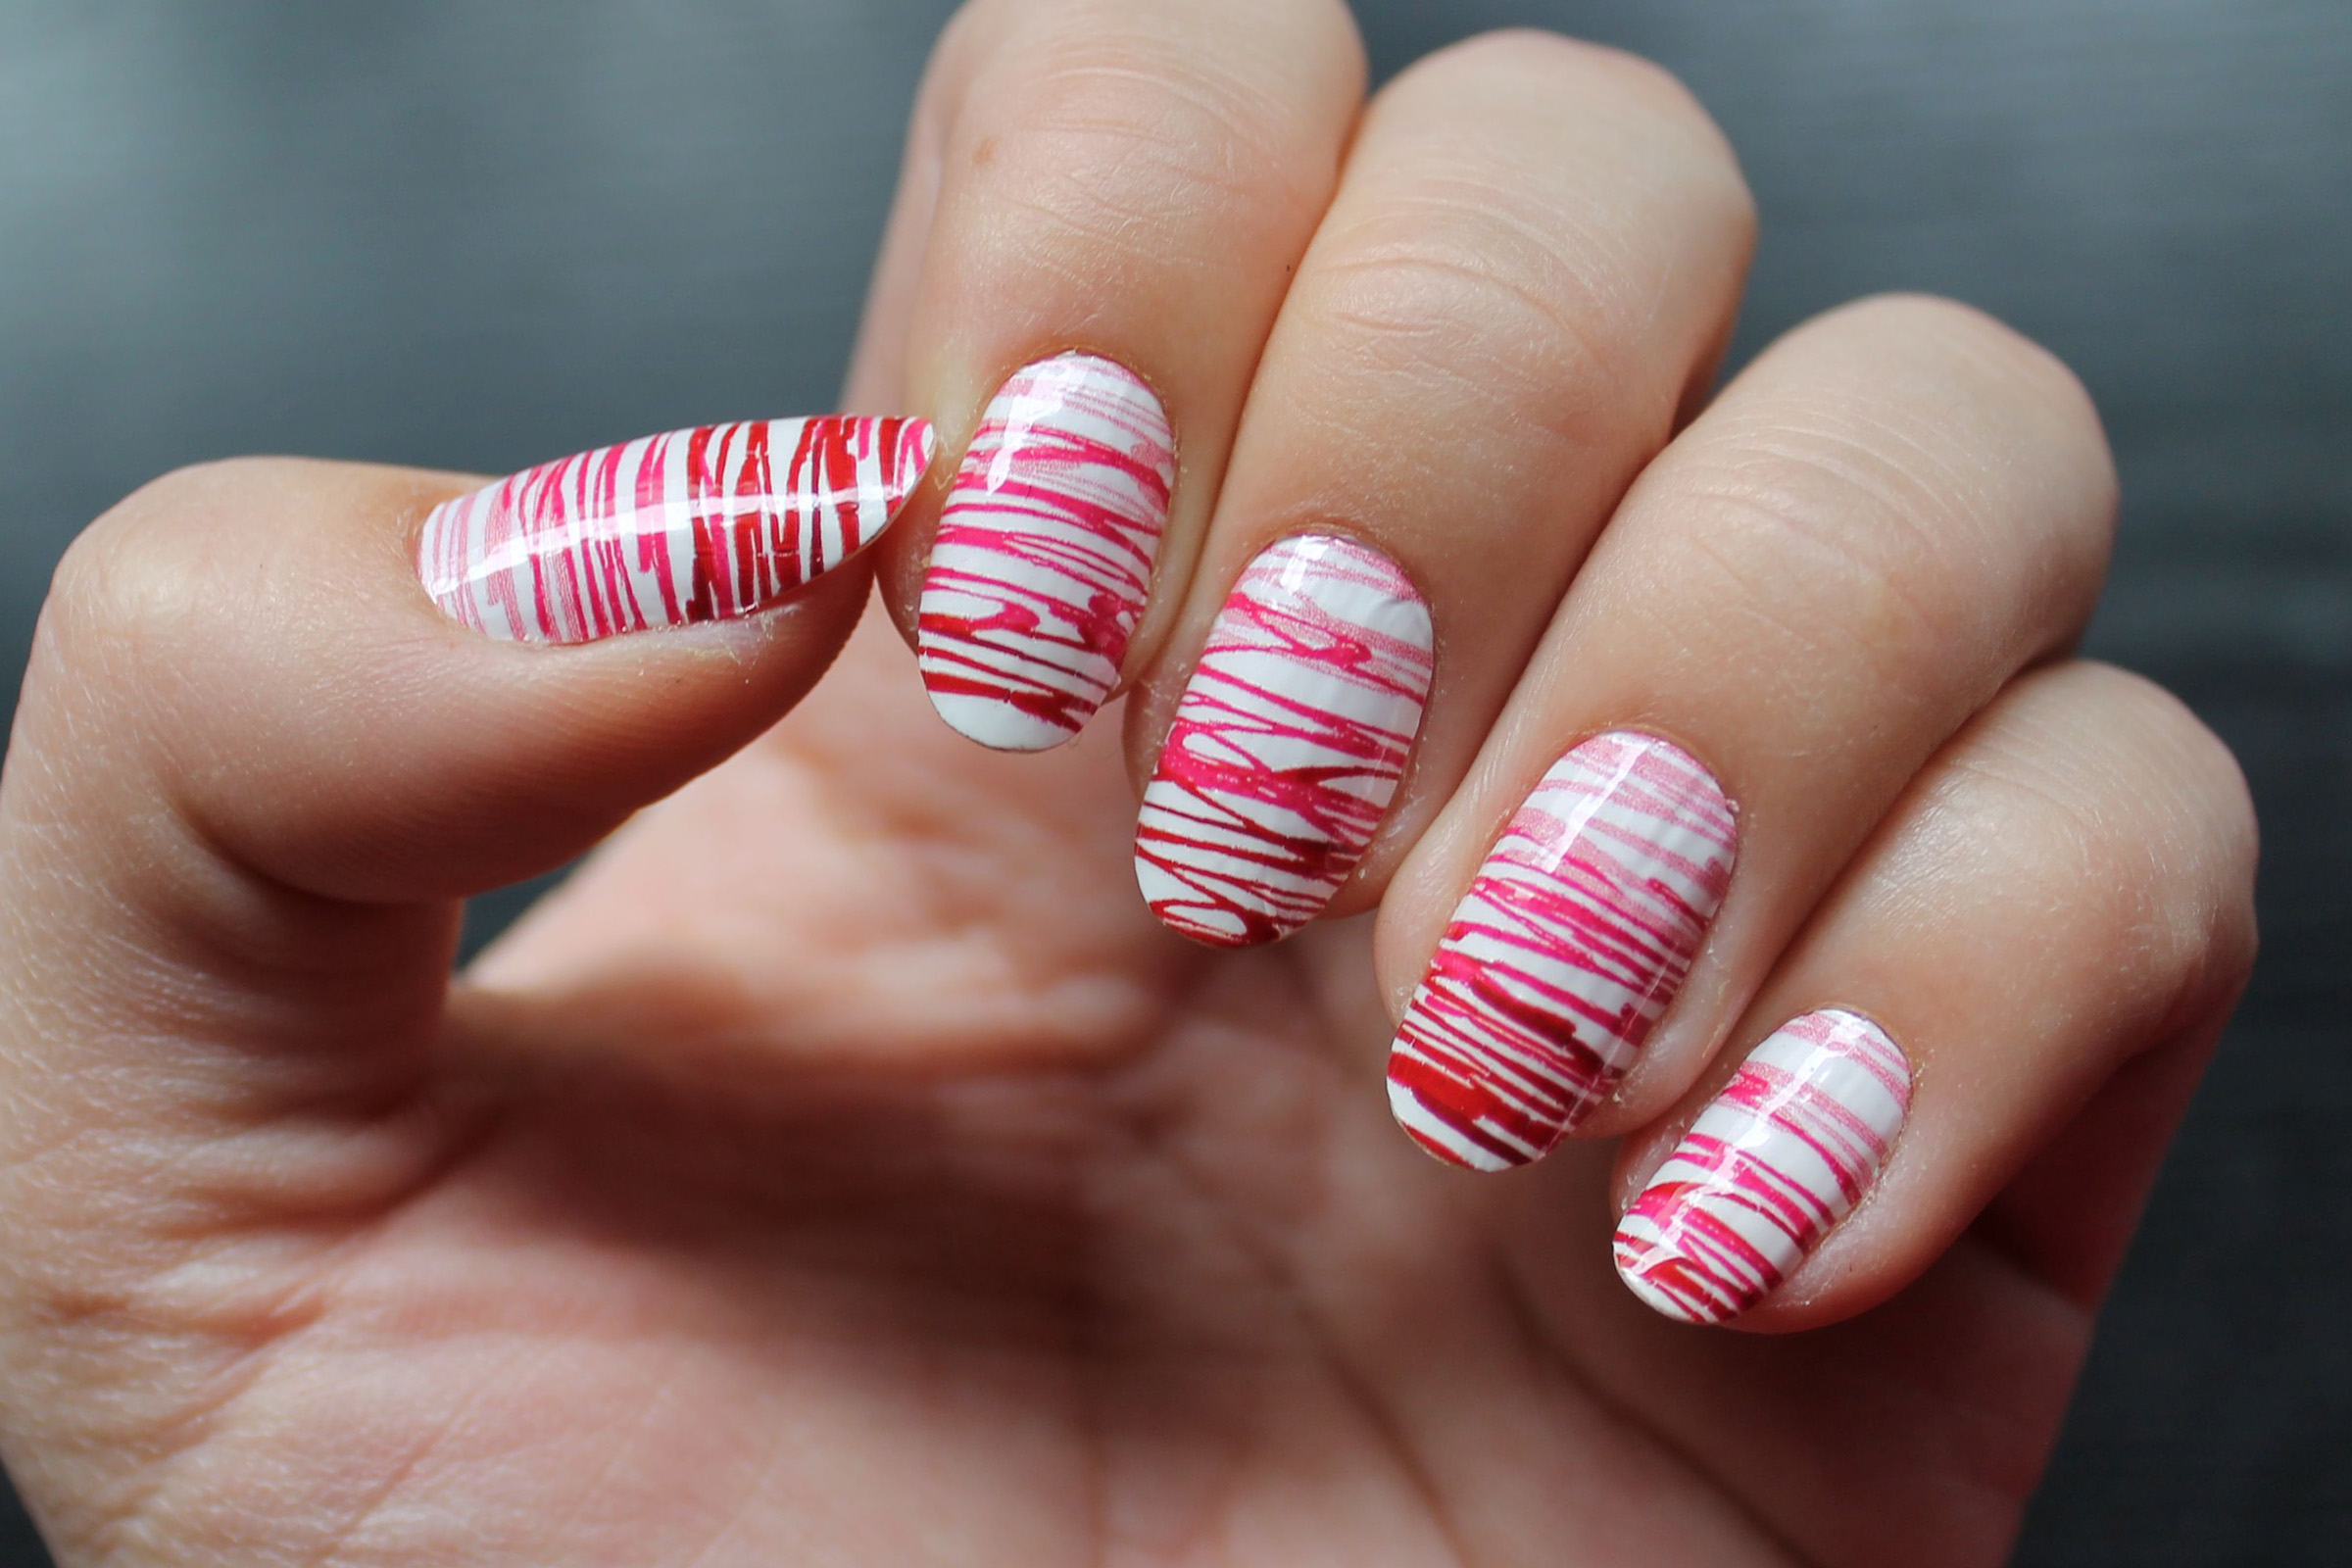 It\'s because I think too much: Incoco Nail Wrap Giveaway